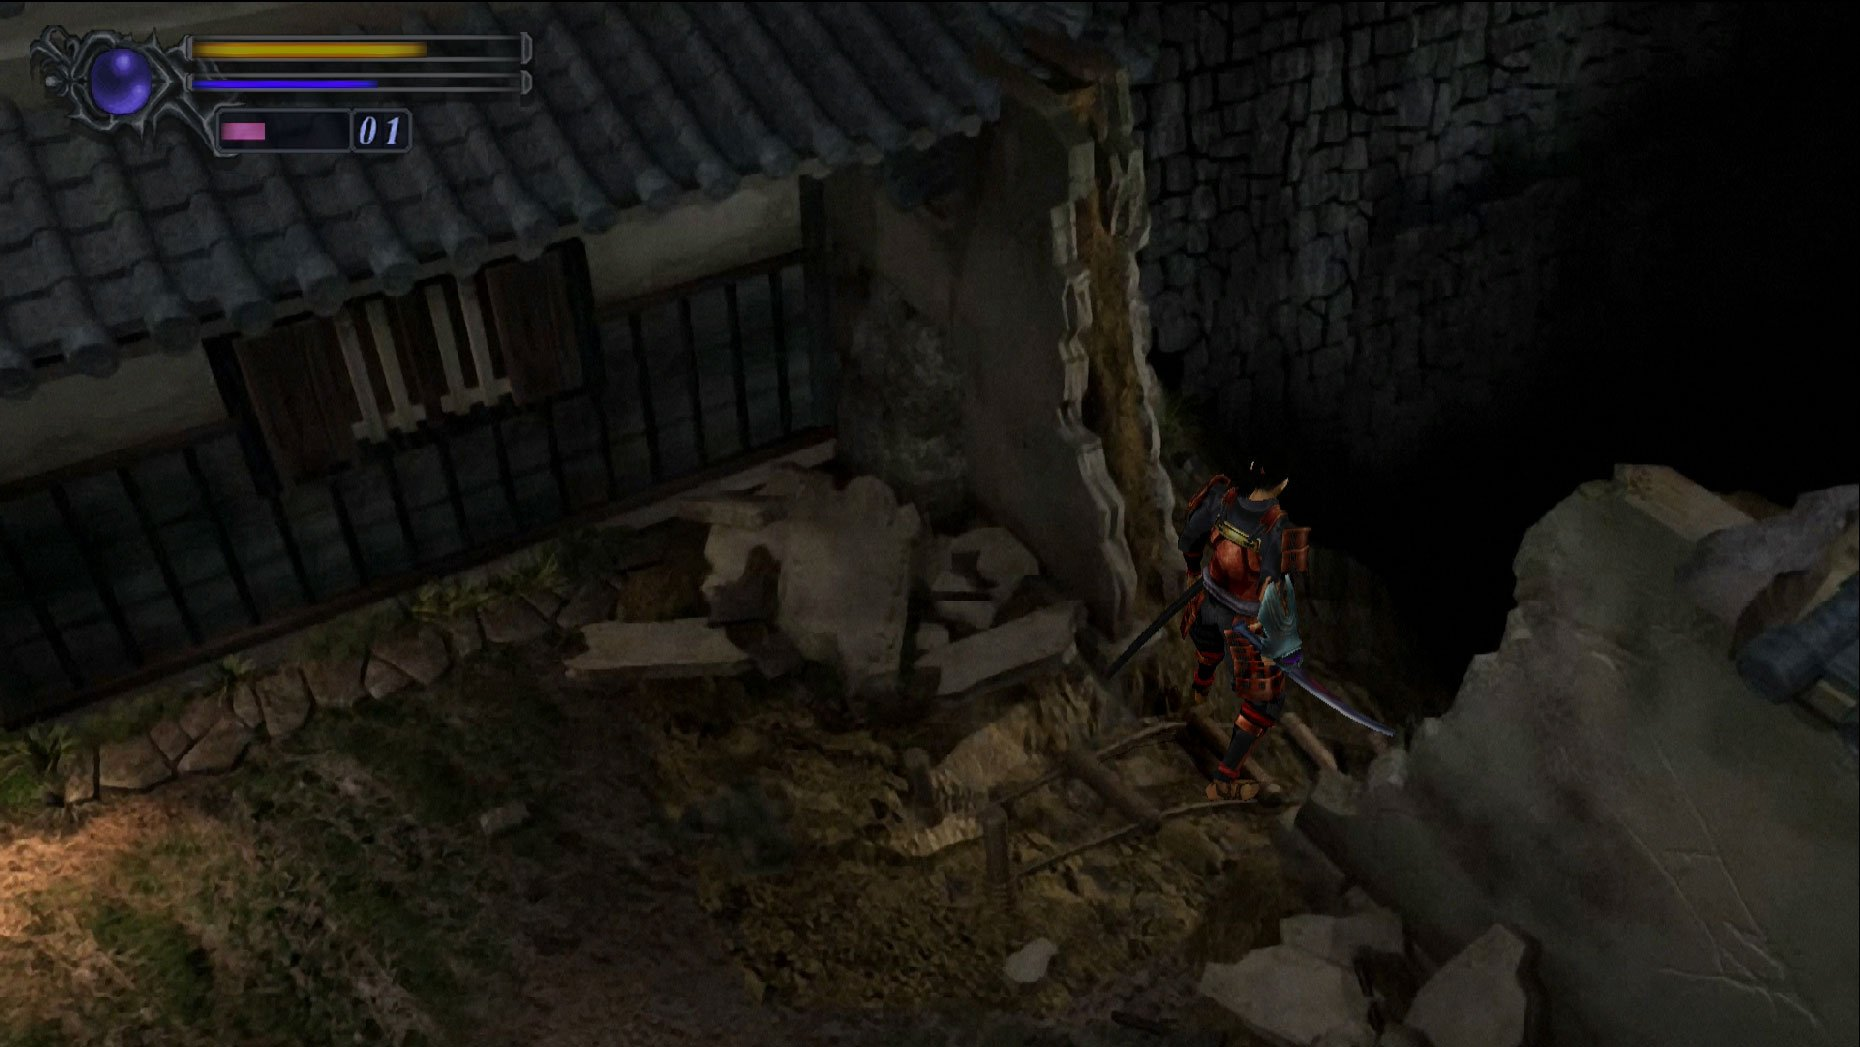 Onimusha Warlords Where To Find Equipment To Descend